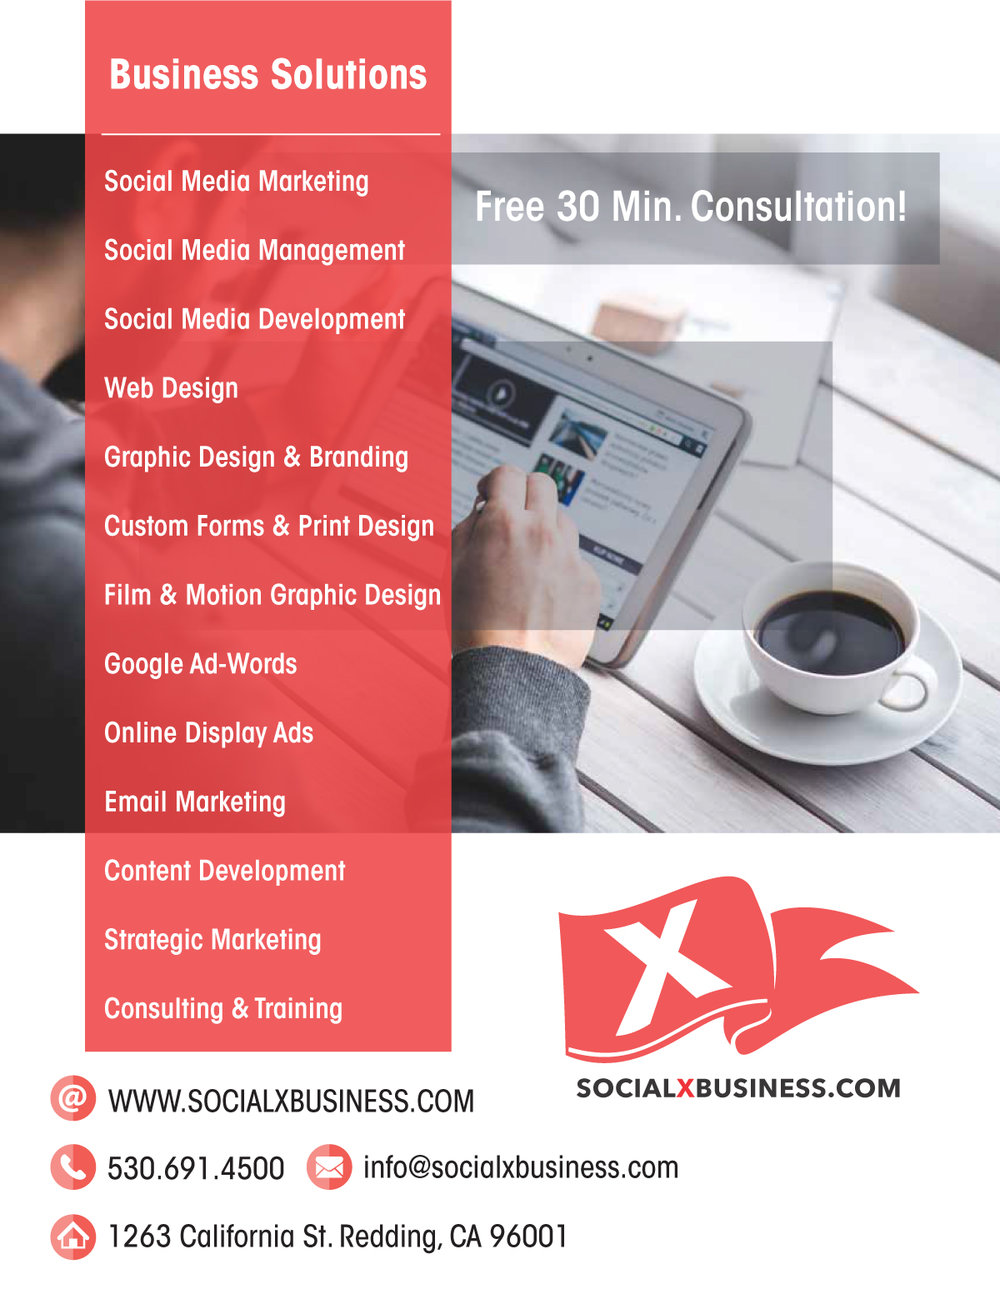 SocialxBusiness Website Design and Optimization.jpg